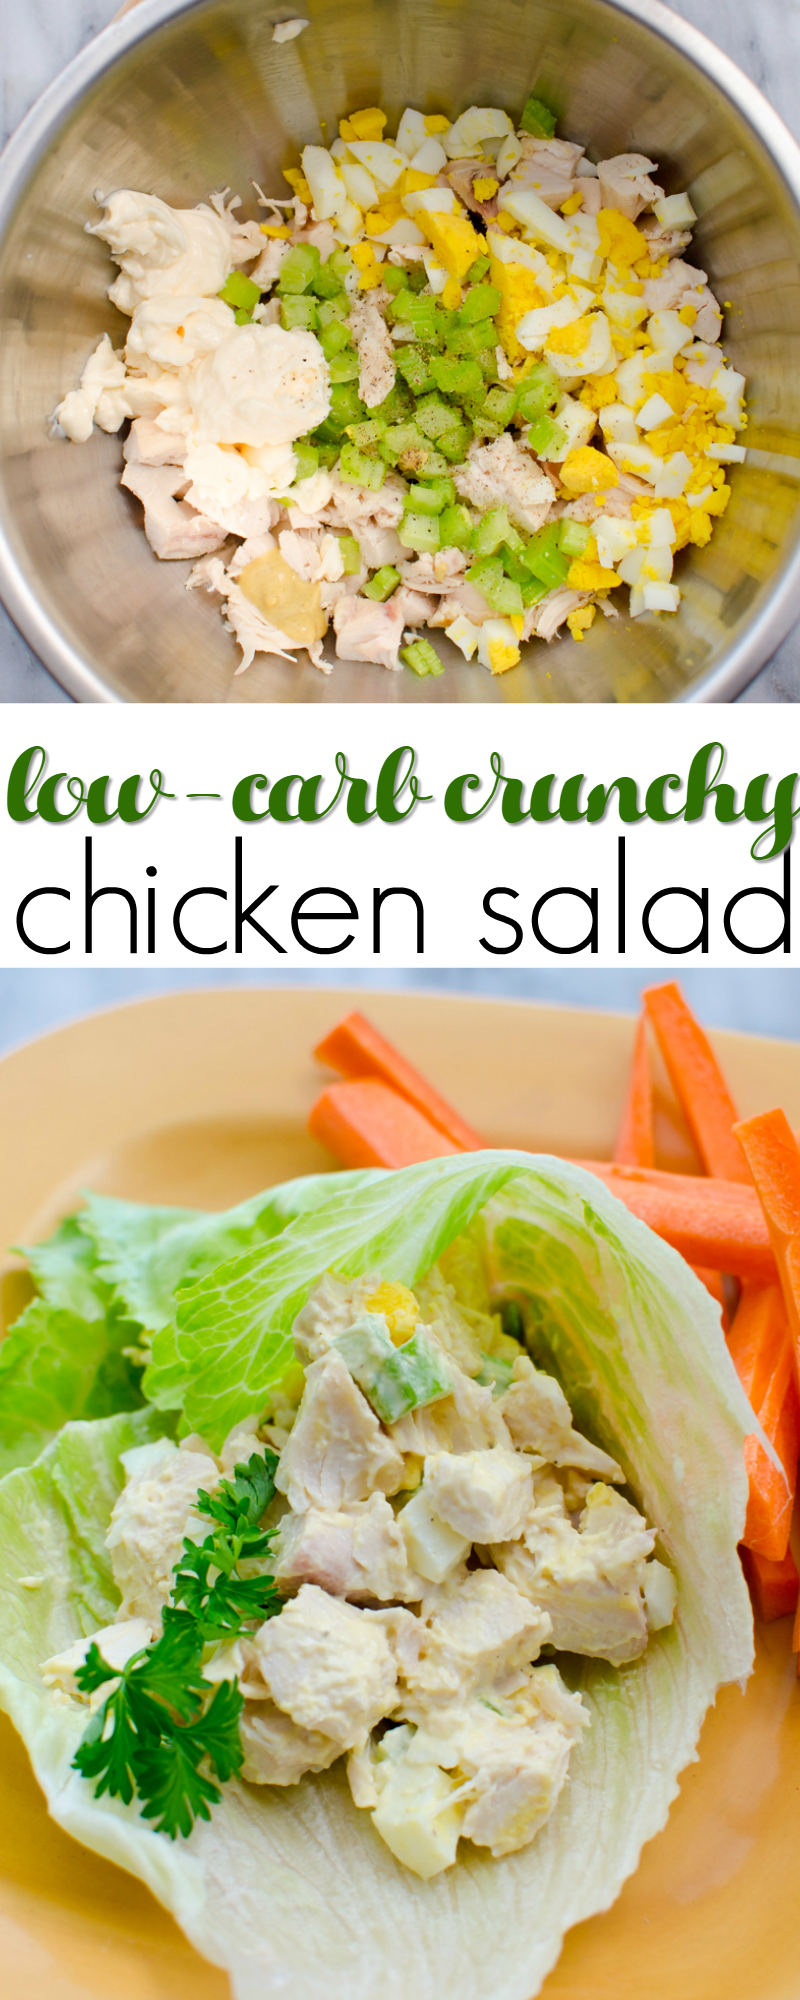 low-carb crunchy chicken salad